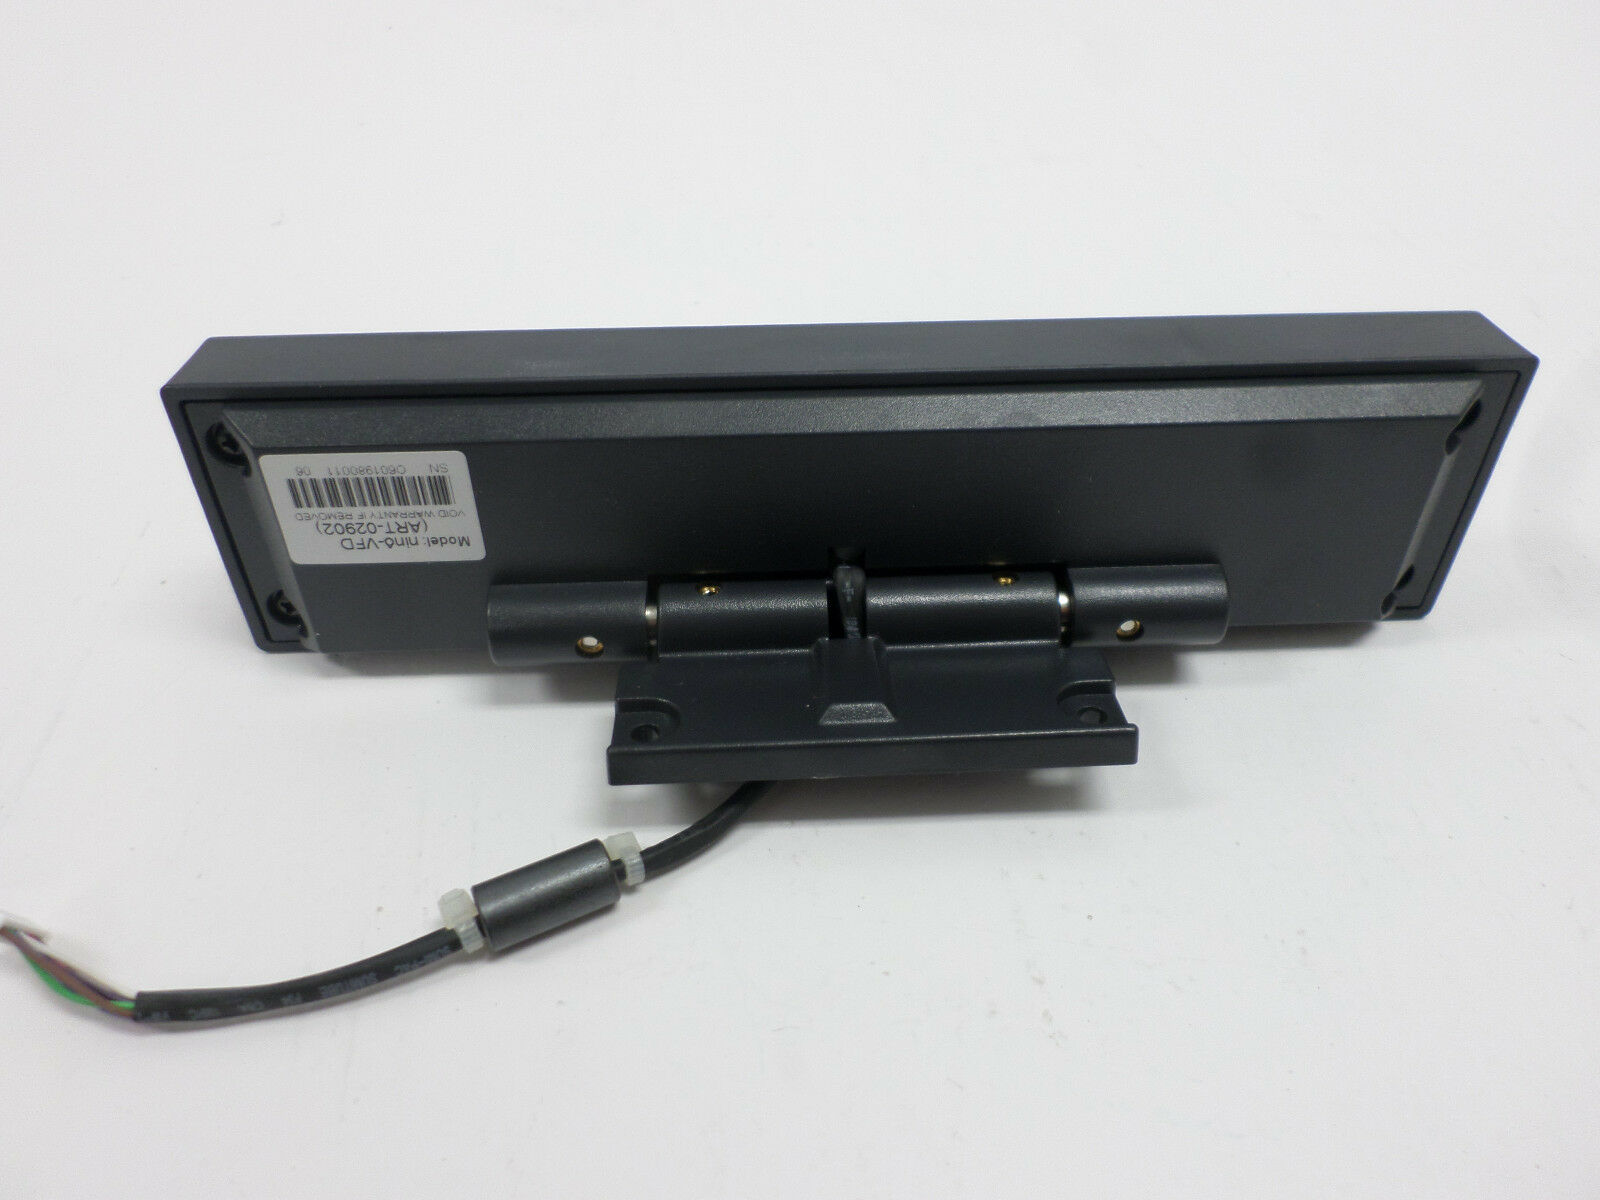 Aures j2 ART-02902 nino 225 240 225-lcm VFD POS Customer Display 2 Line X 20 Character